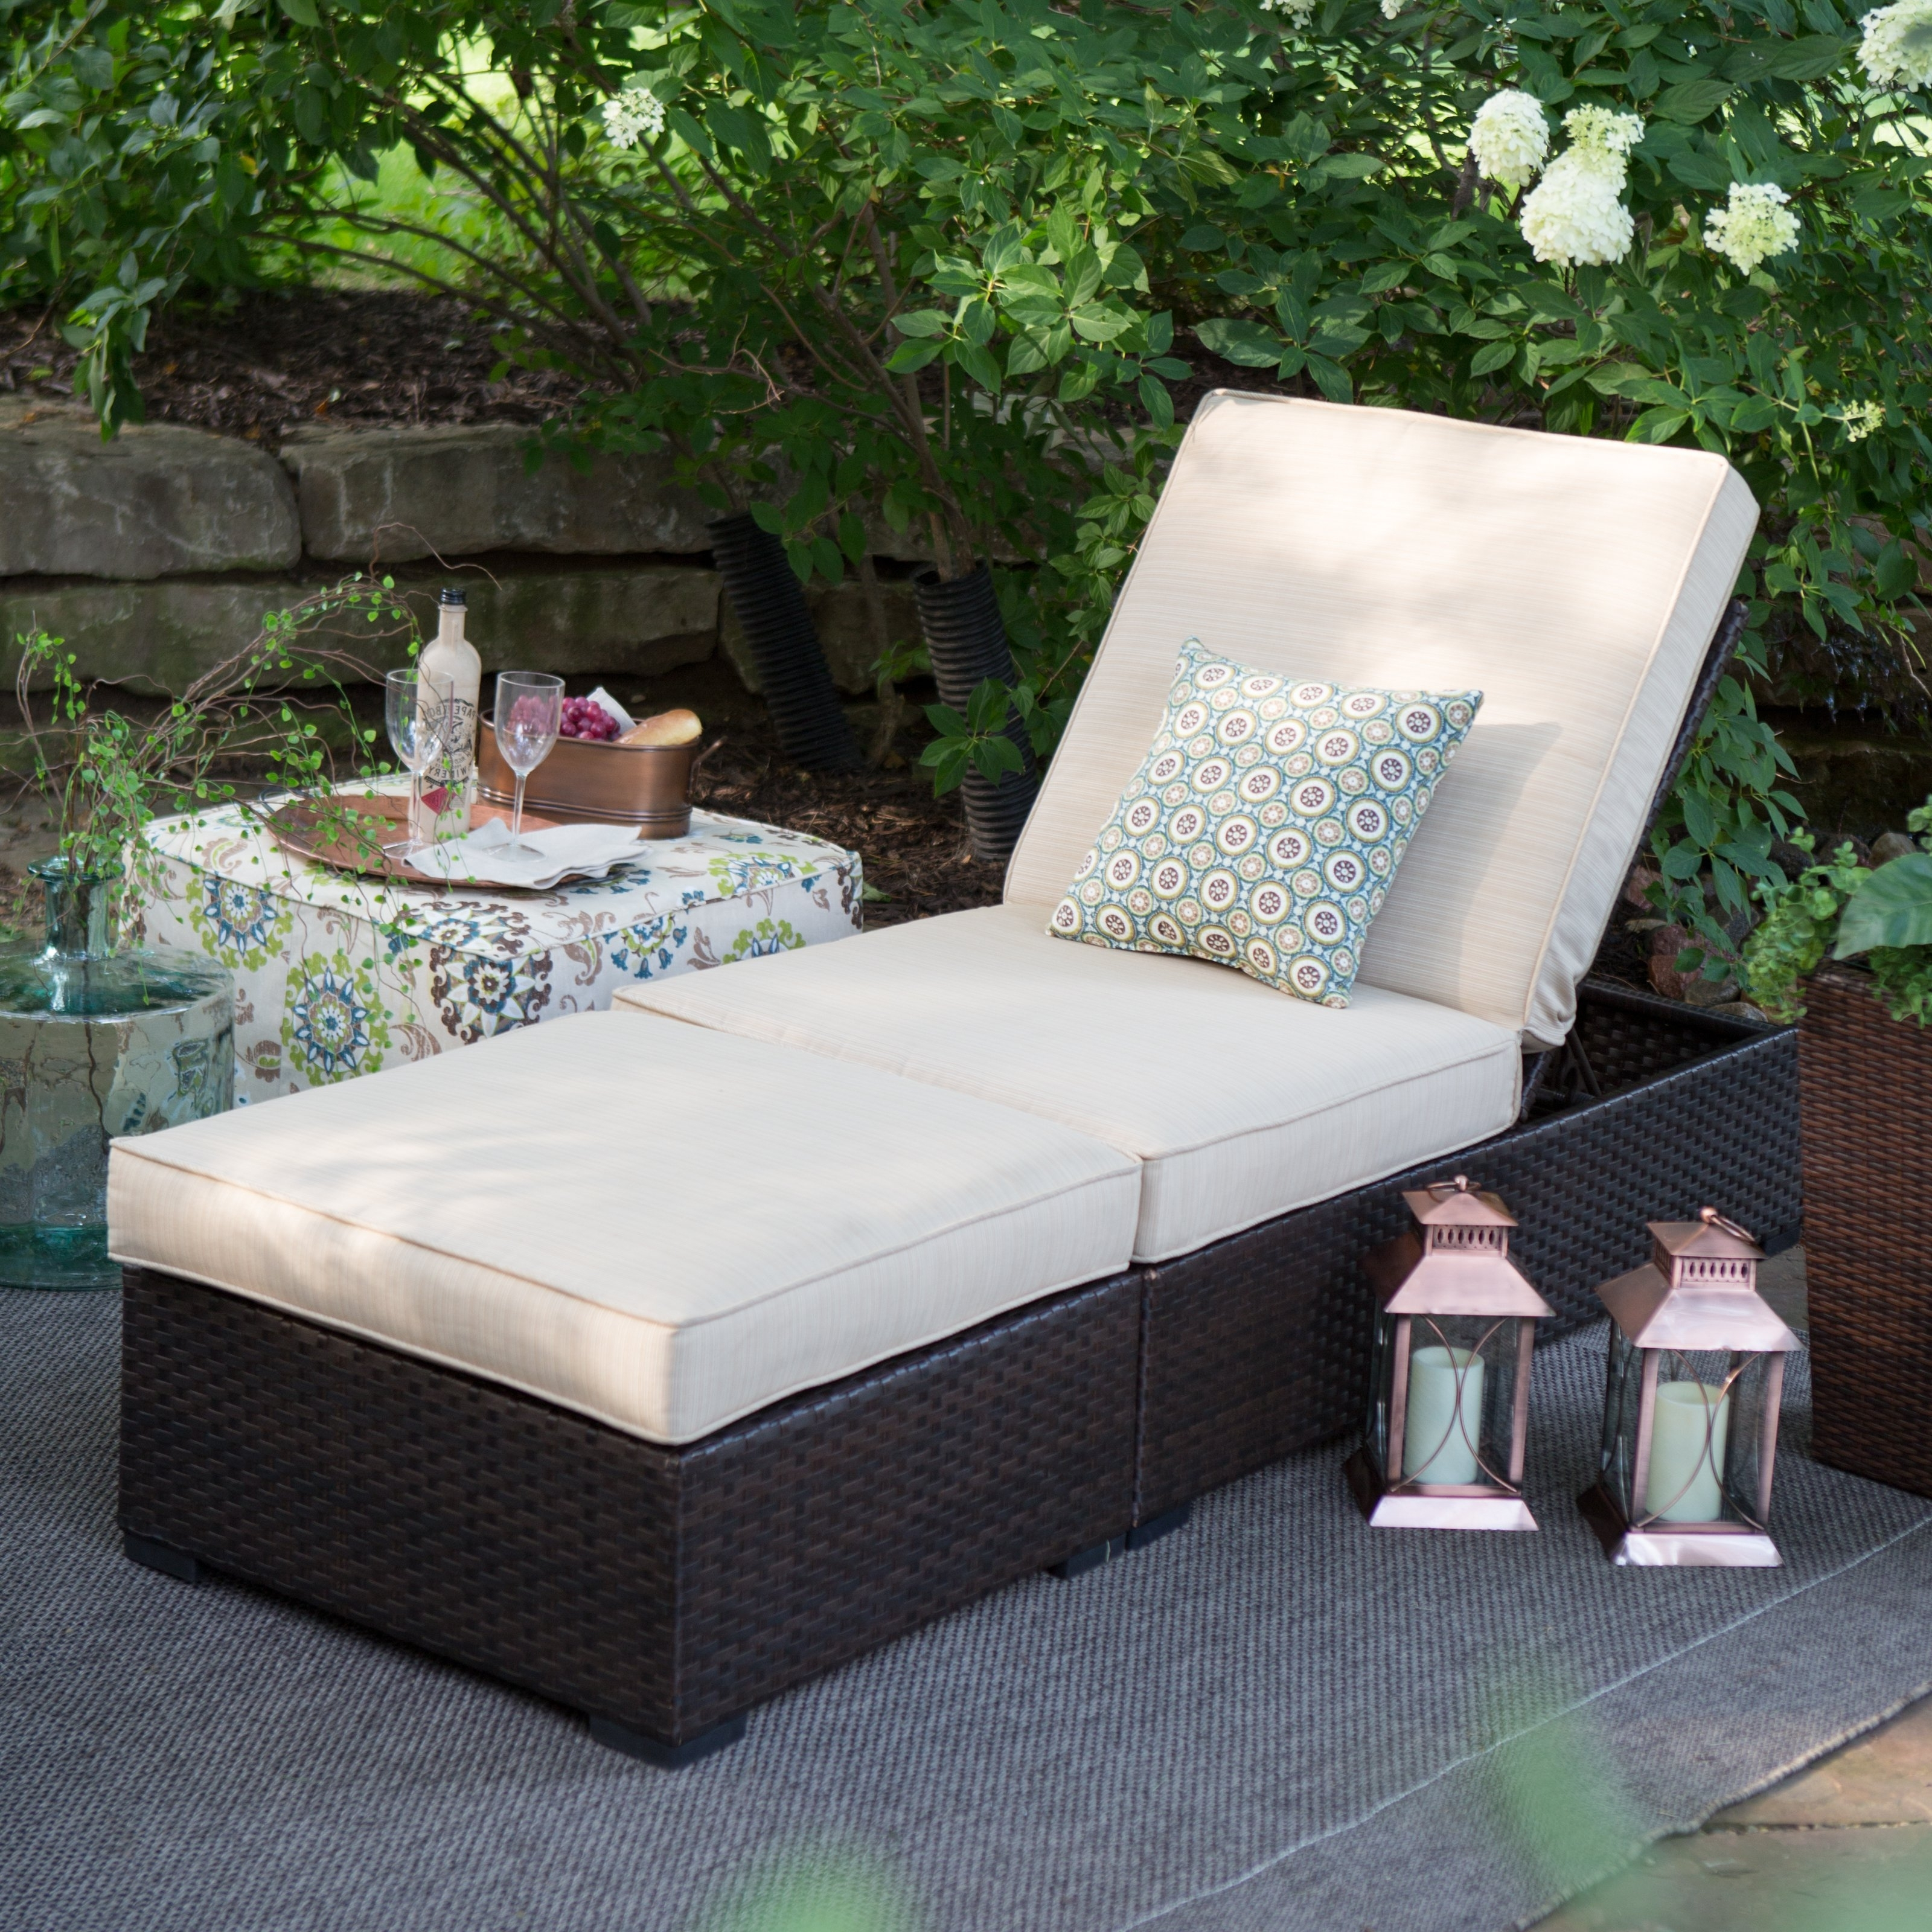 Current Wide Chaise Lounges Throughout Belham Living Marcella Wide Wicker Chaise Lounge With Ottoman (View 11 of 15)